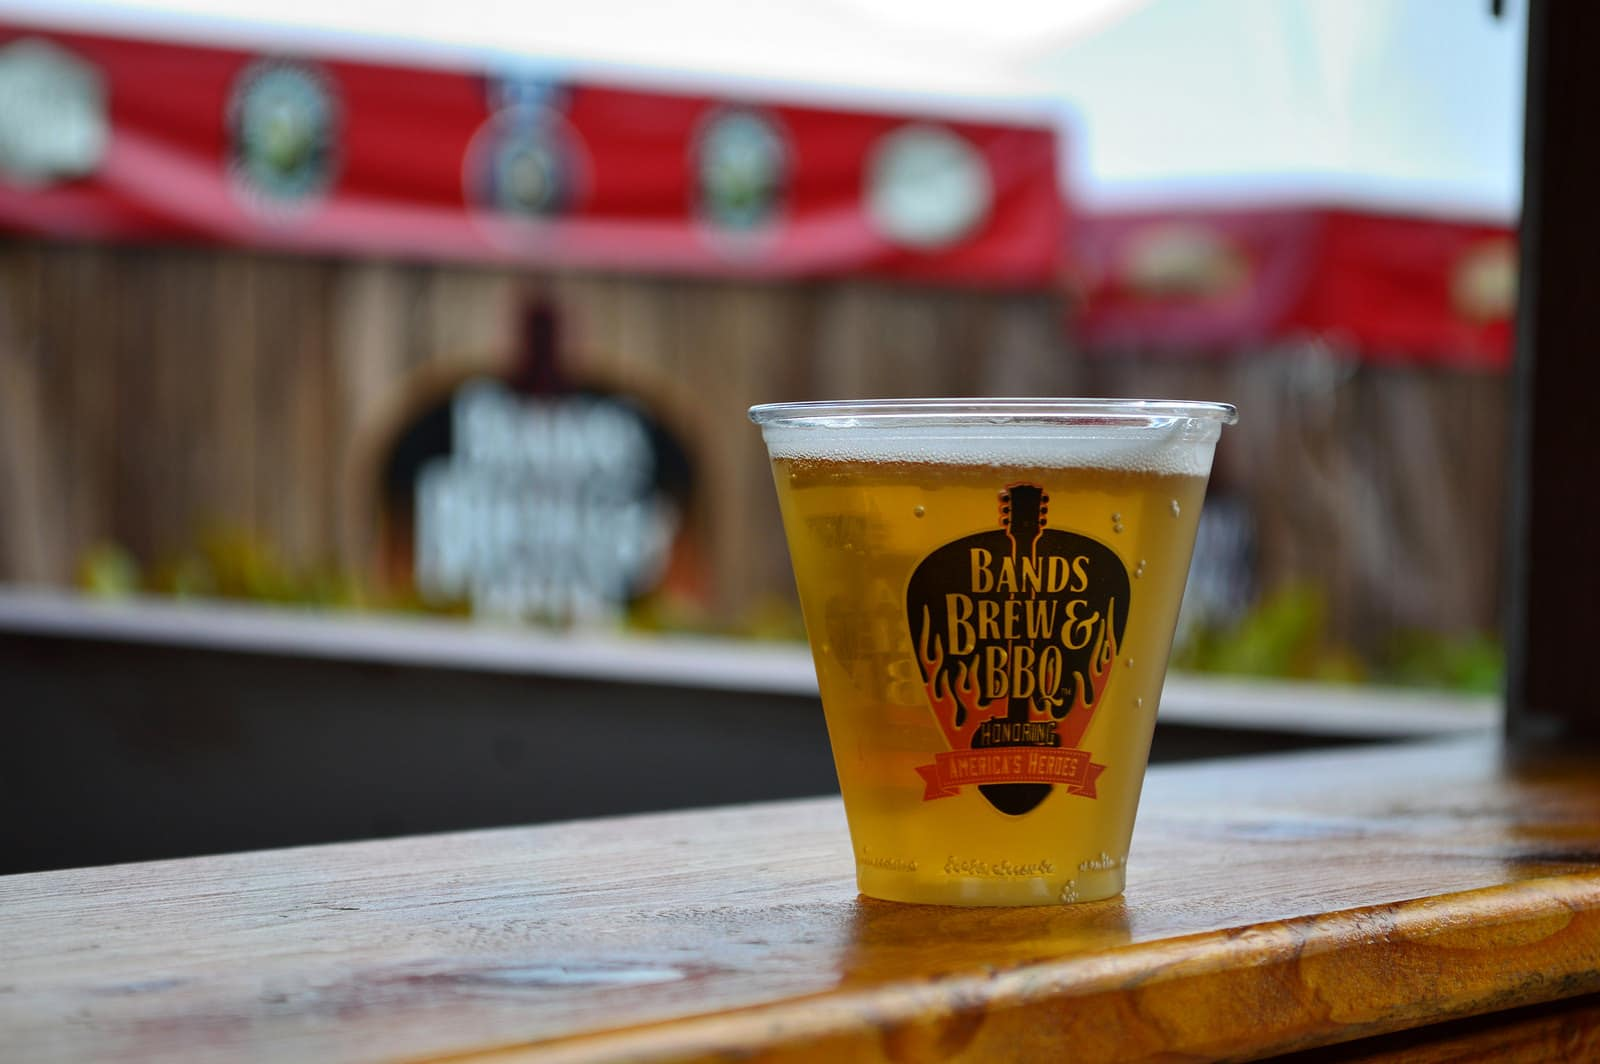 6 reasons you must visit SeaWorld's Bands, Brews, and BBQ